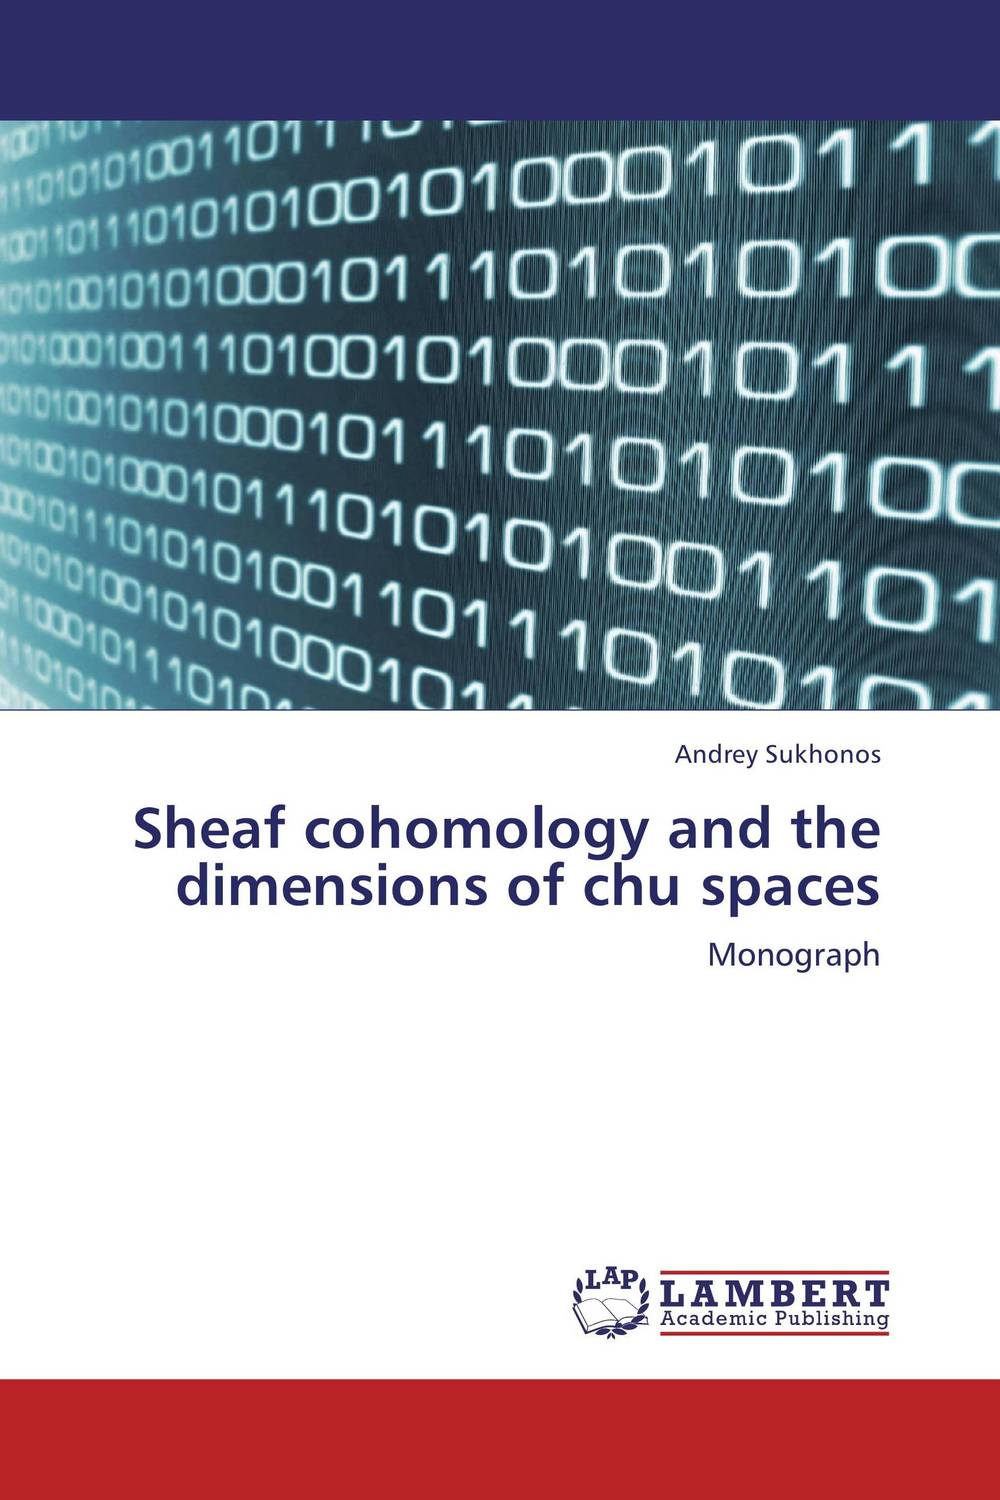 Sheaf cohomology and the dimensions of chu spaces facility location and the theory of production